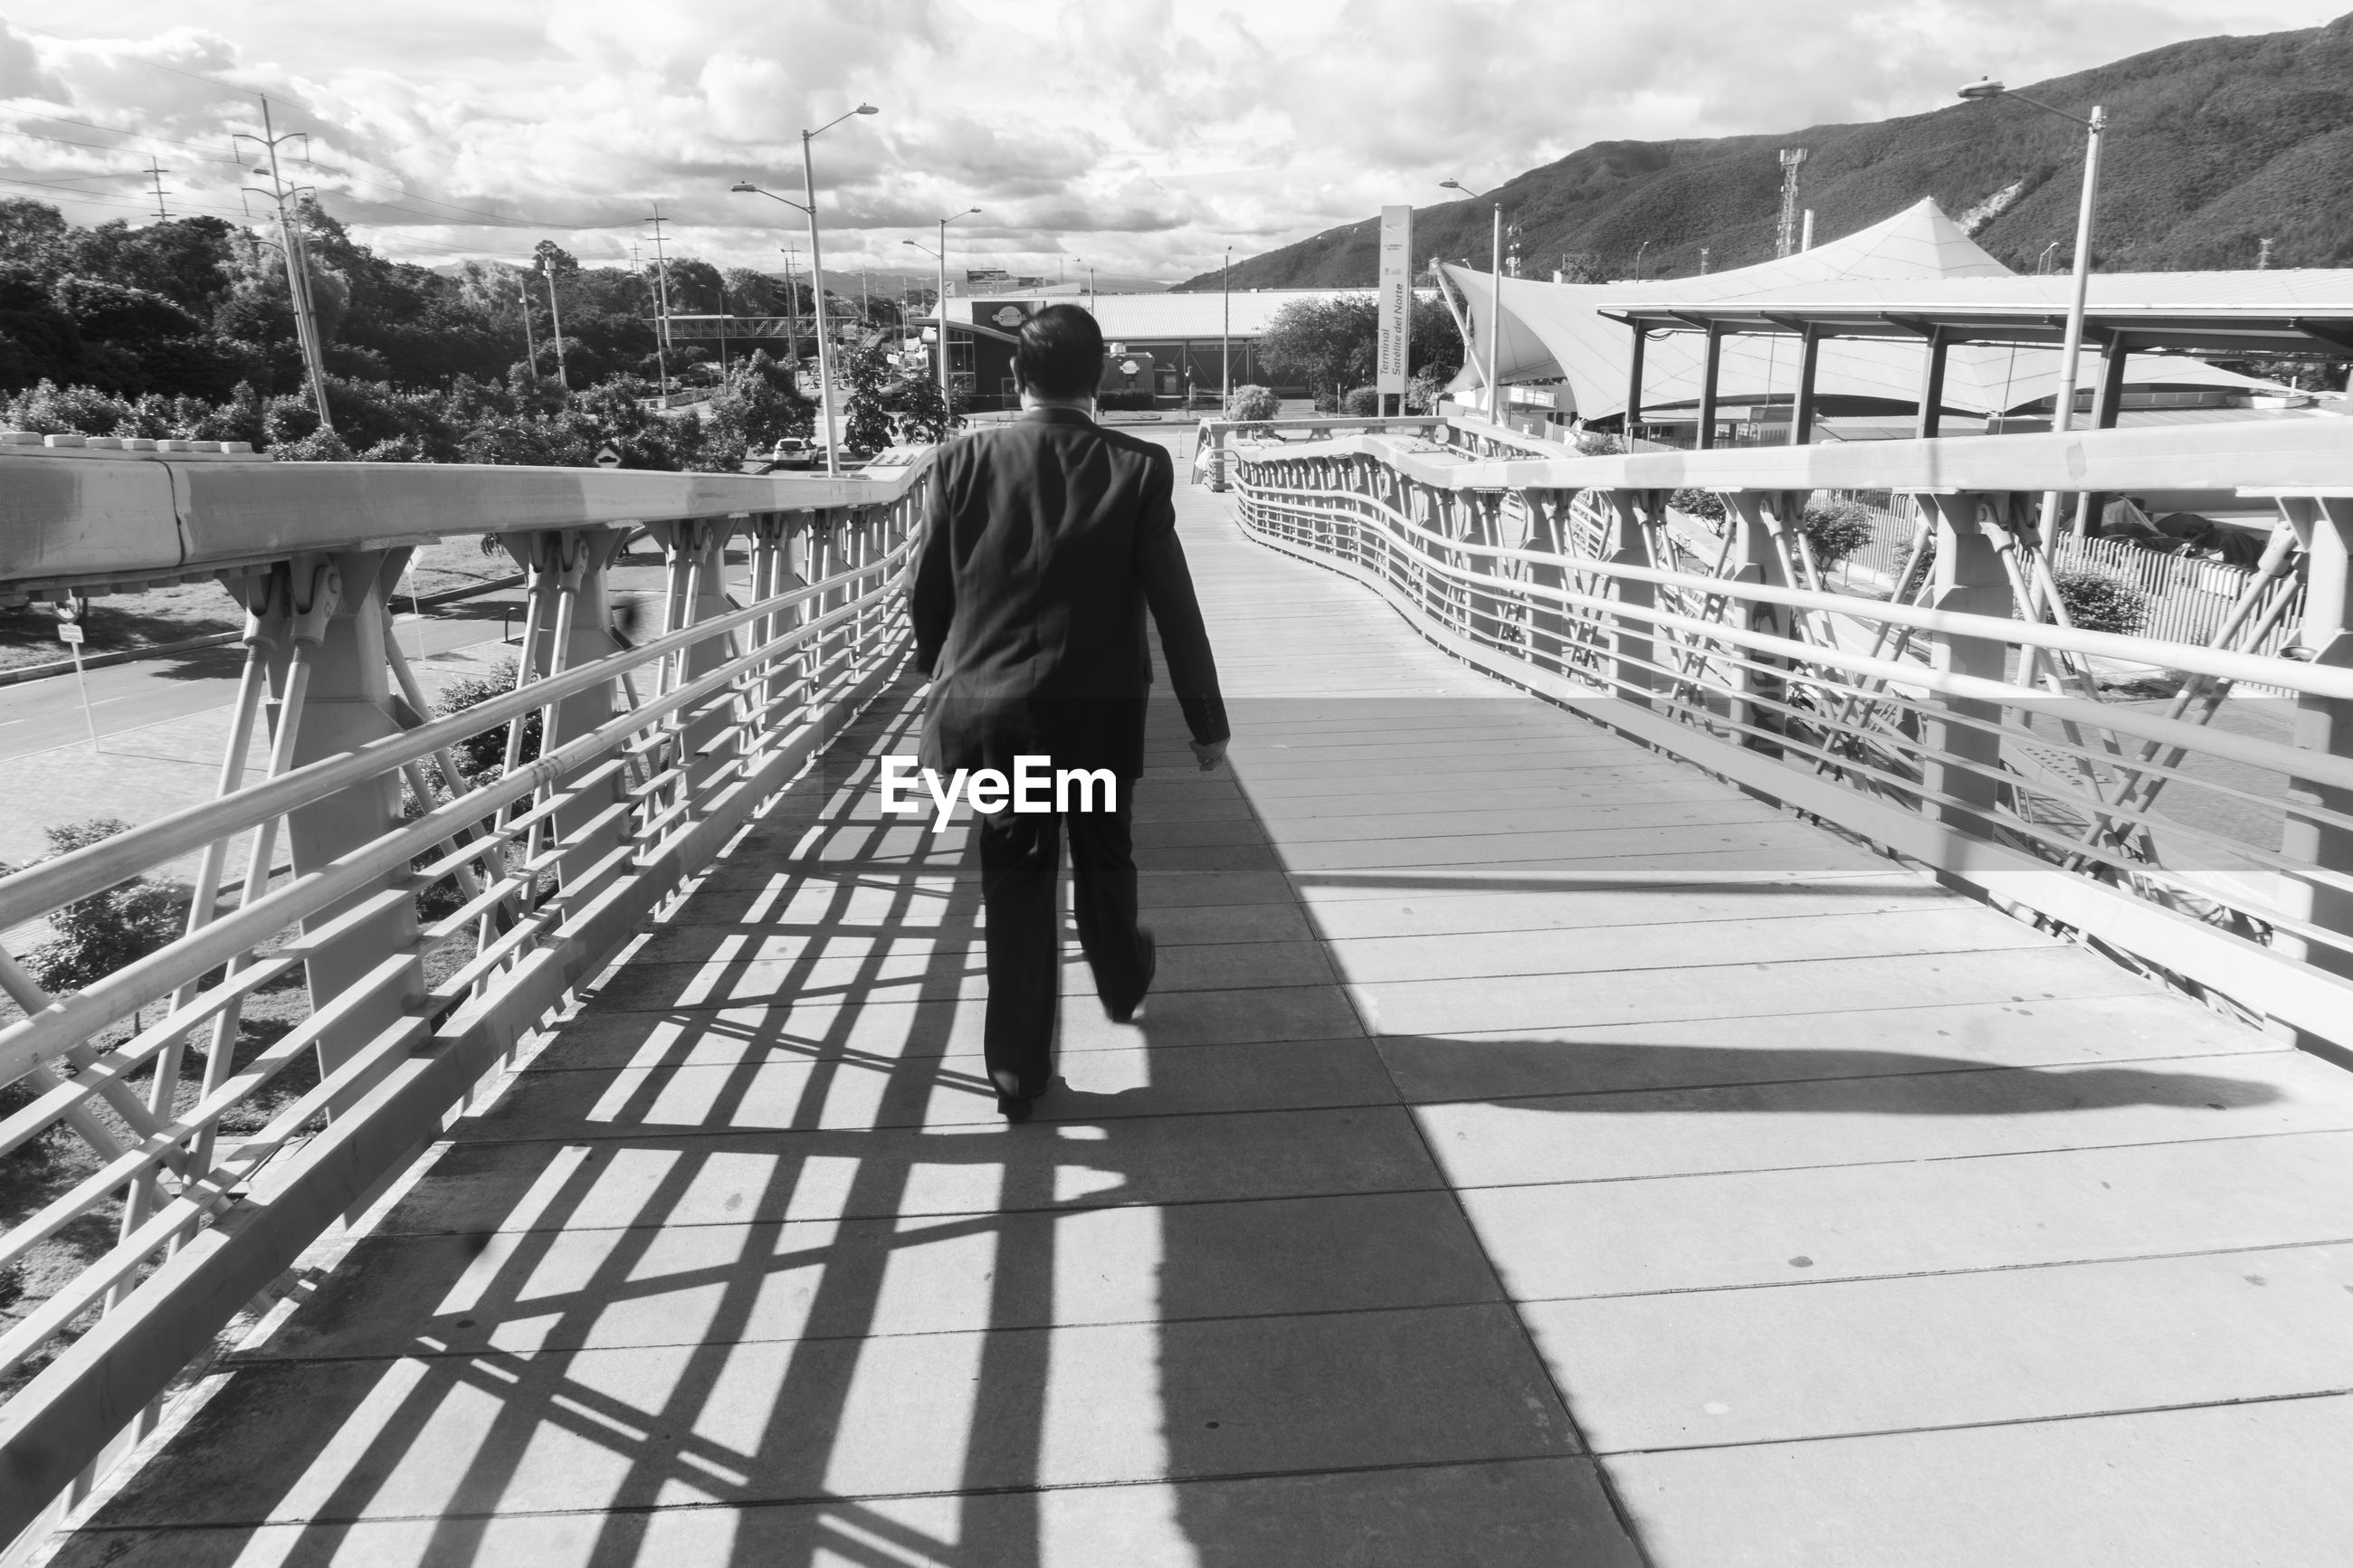 REAR VIEW OF MAN STANDING ON FOOTBRIDGE AGAINST SKY